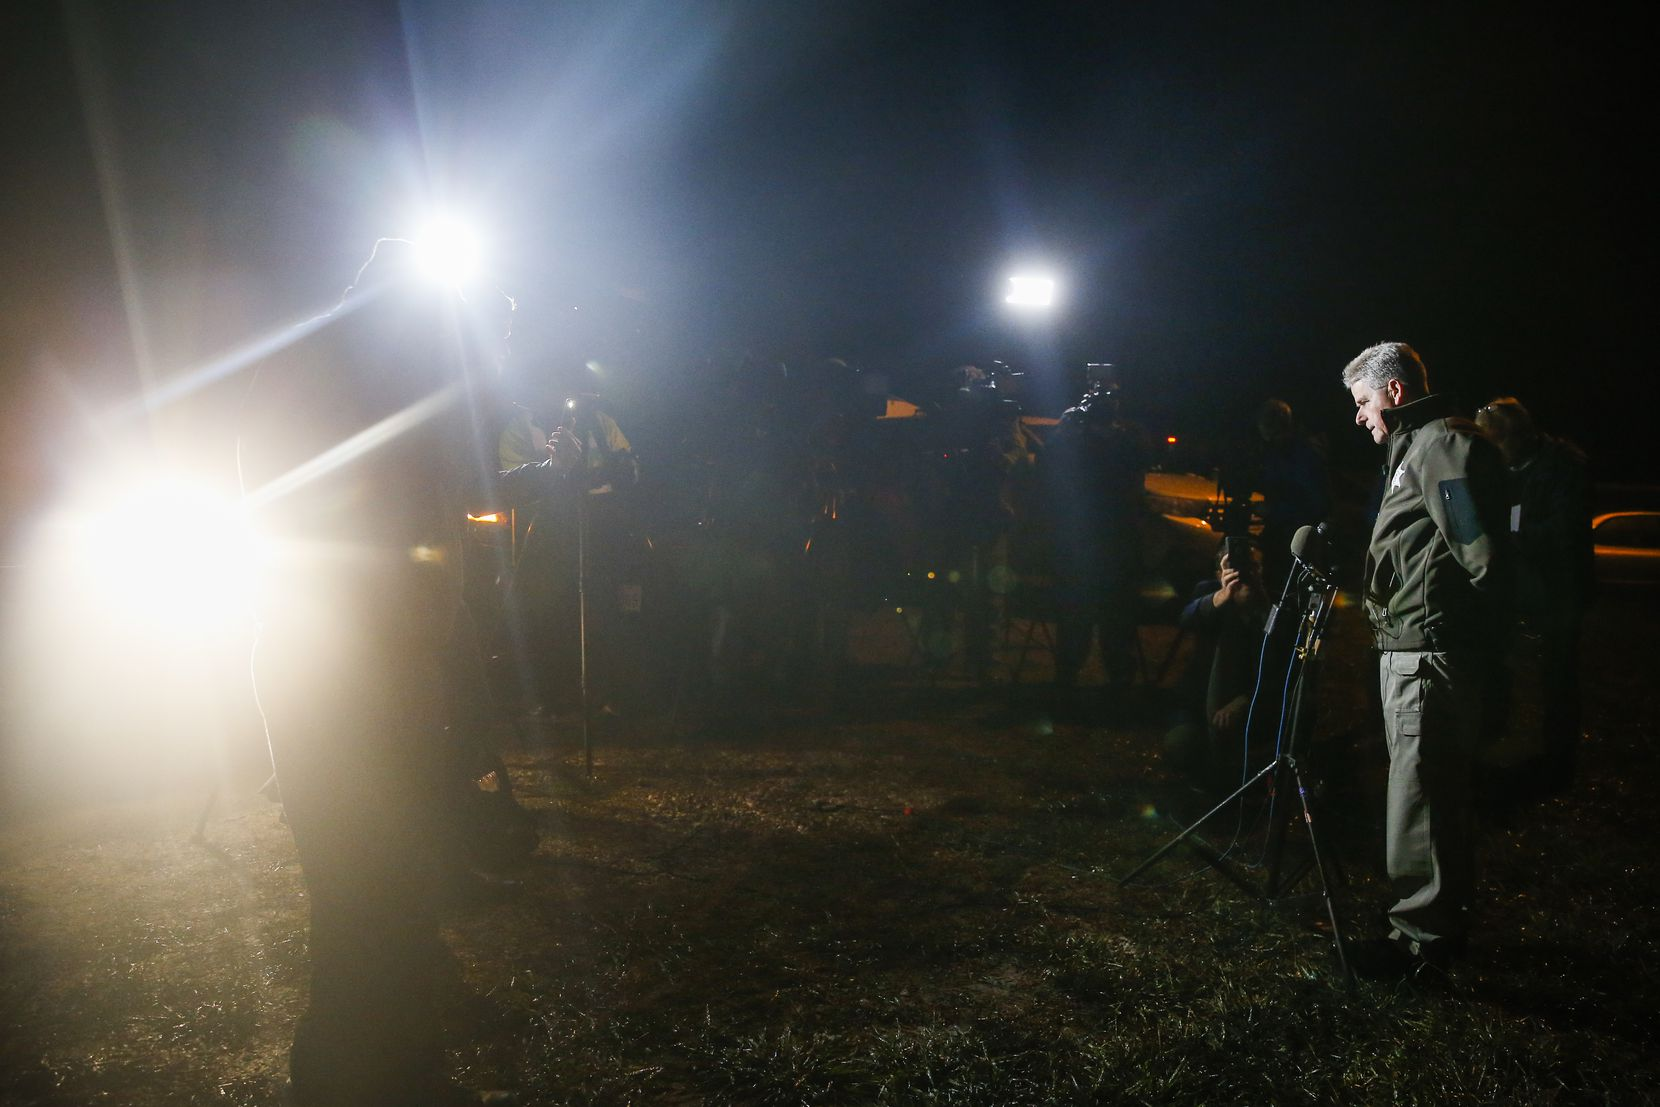 Chief Deputy Buddy Oxford of the Hunt County Sheriff's Department addresses members of the media outside of a crime scene after a shooting at Party Venue on Highway 380 in Greenville, Texas.